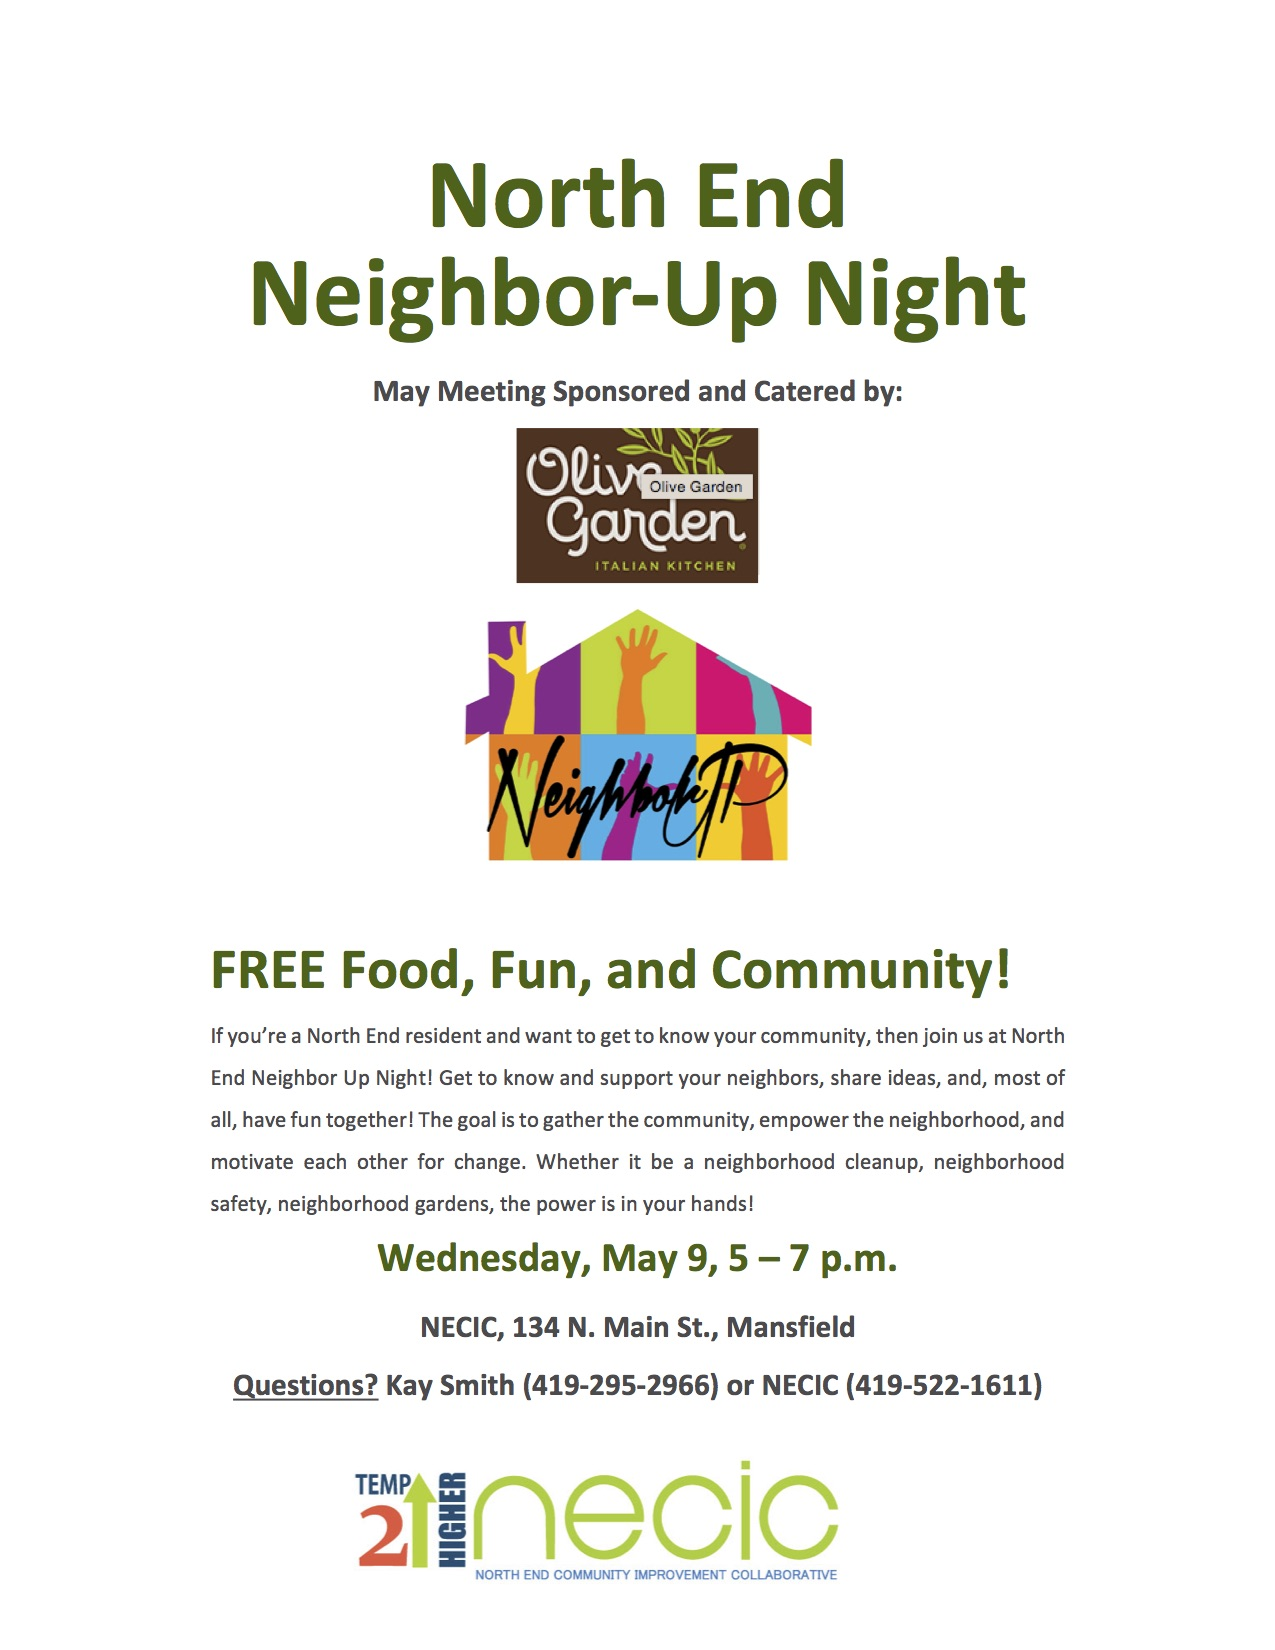 March Neighbor Up Night Sponsored by Chipotle